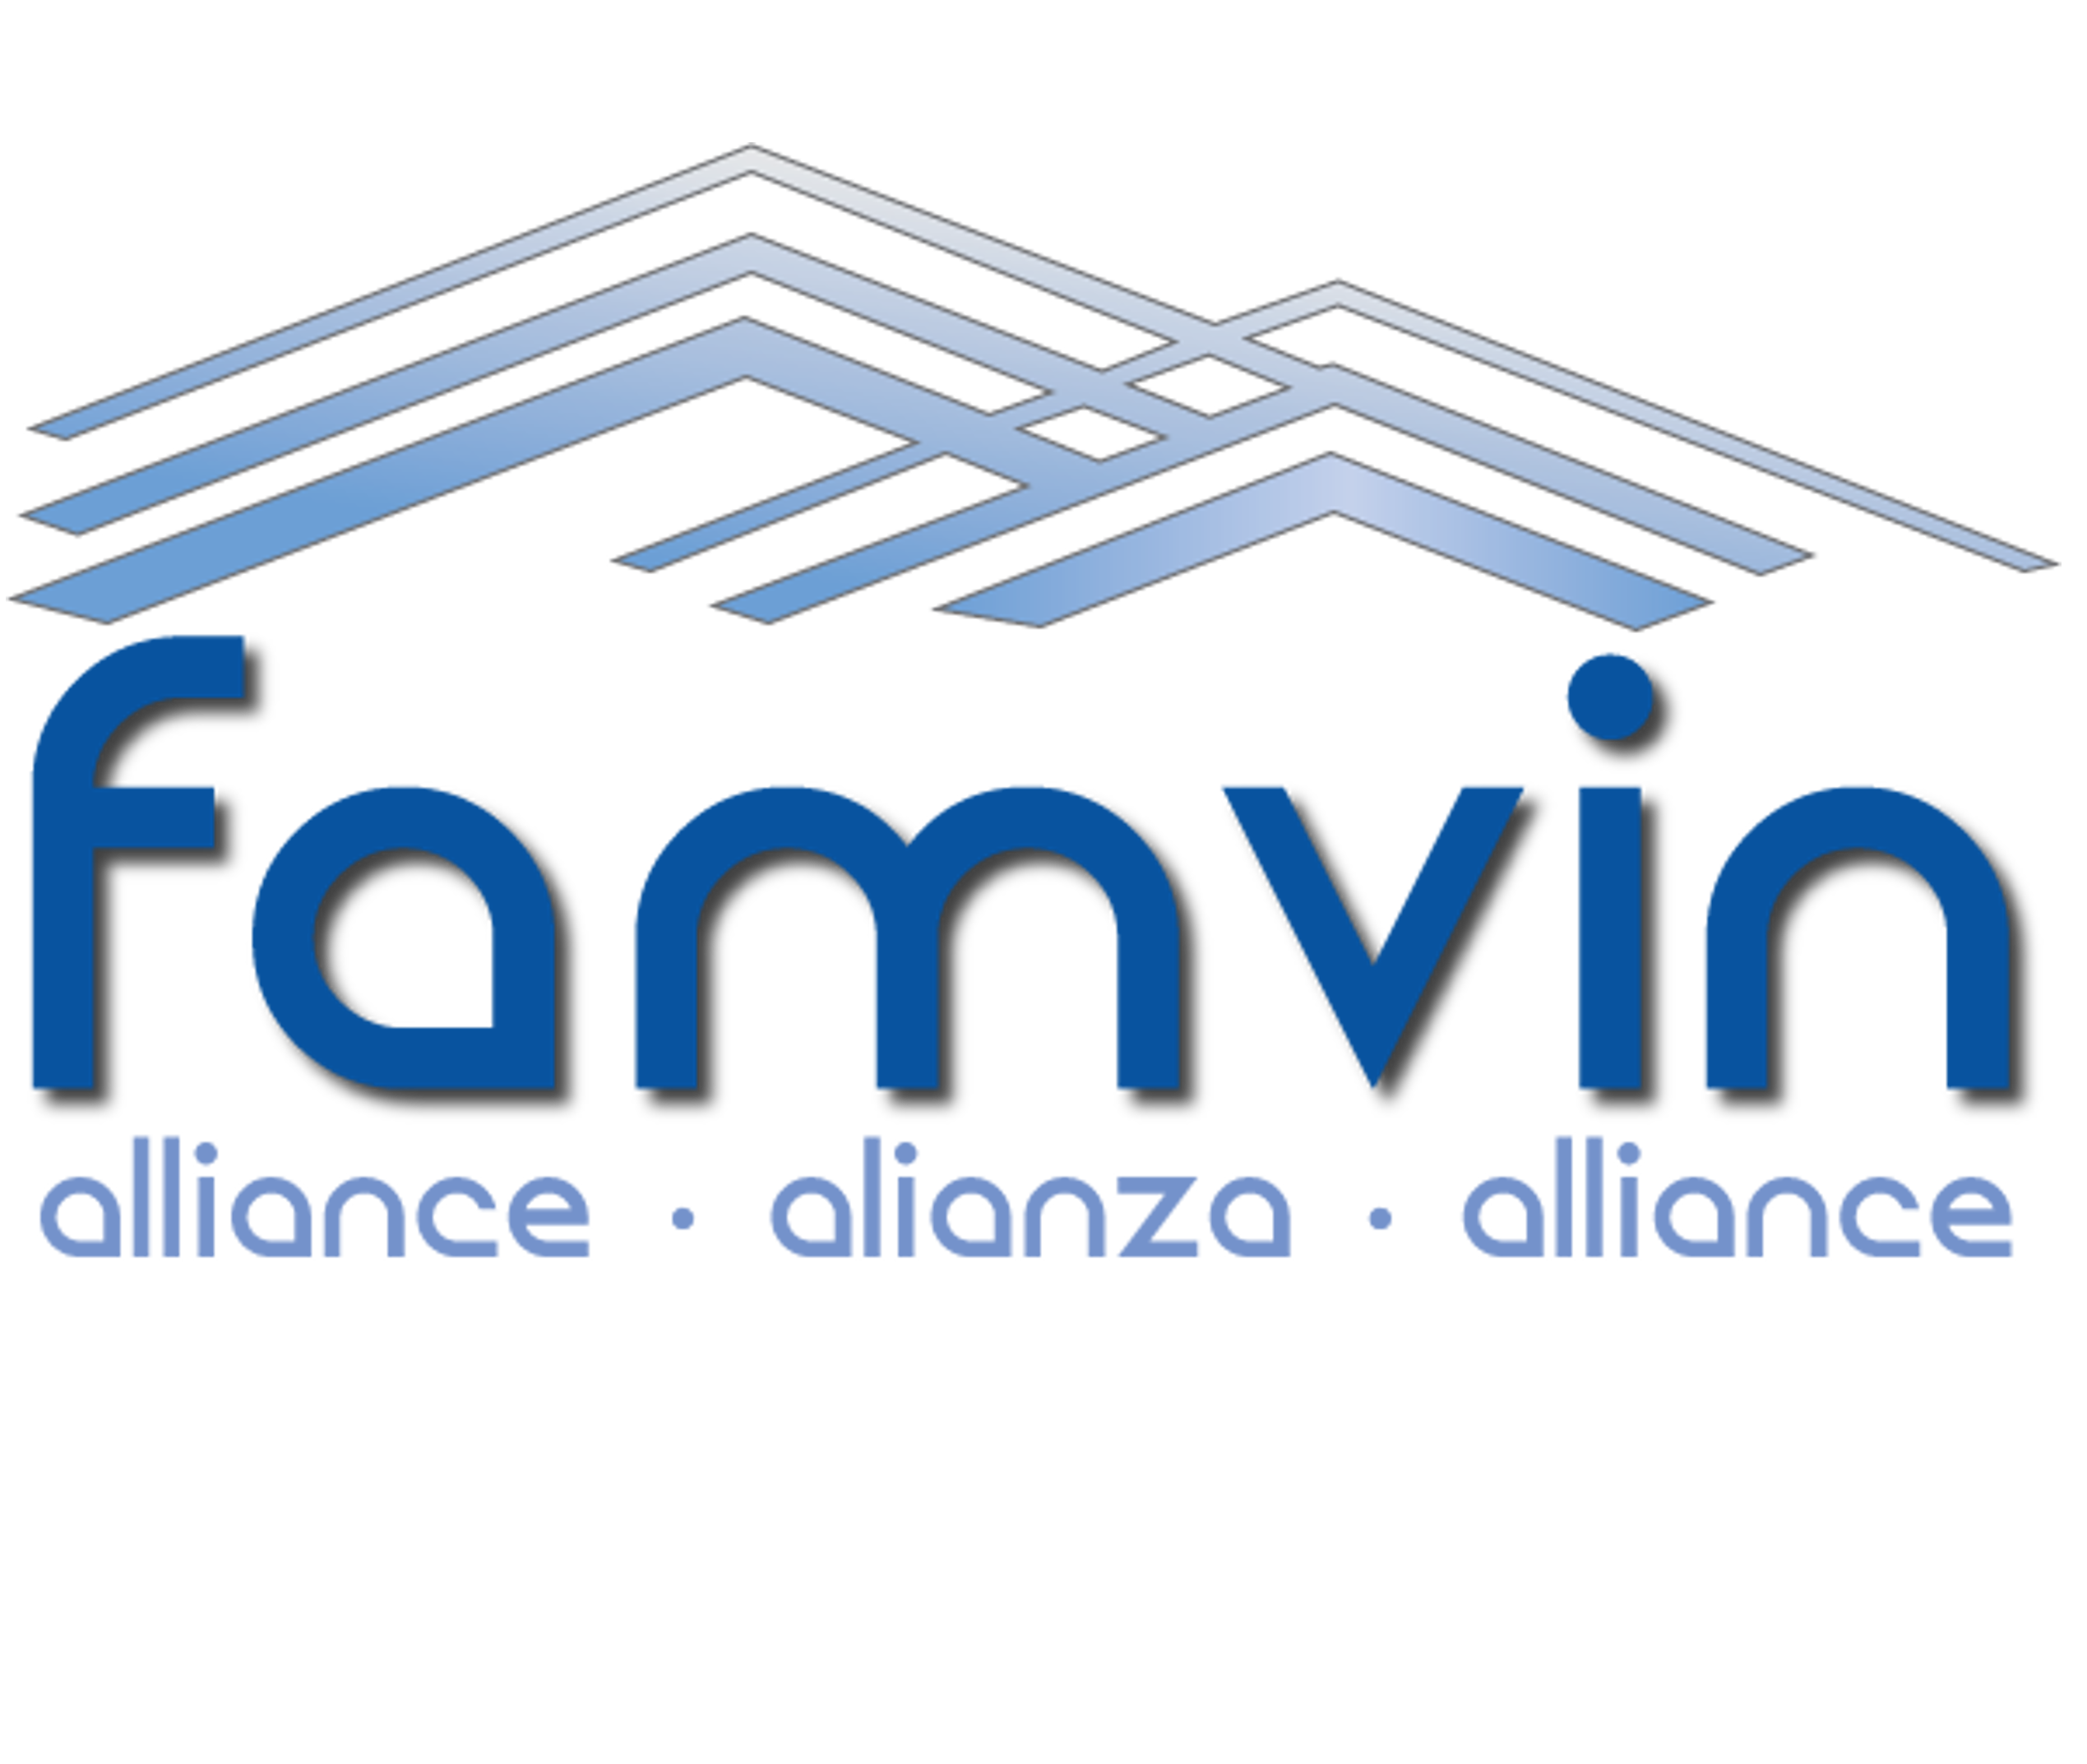 Famvin Homeless Alliance